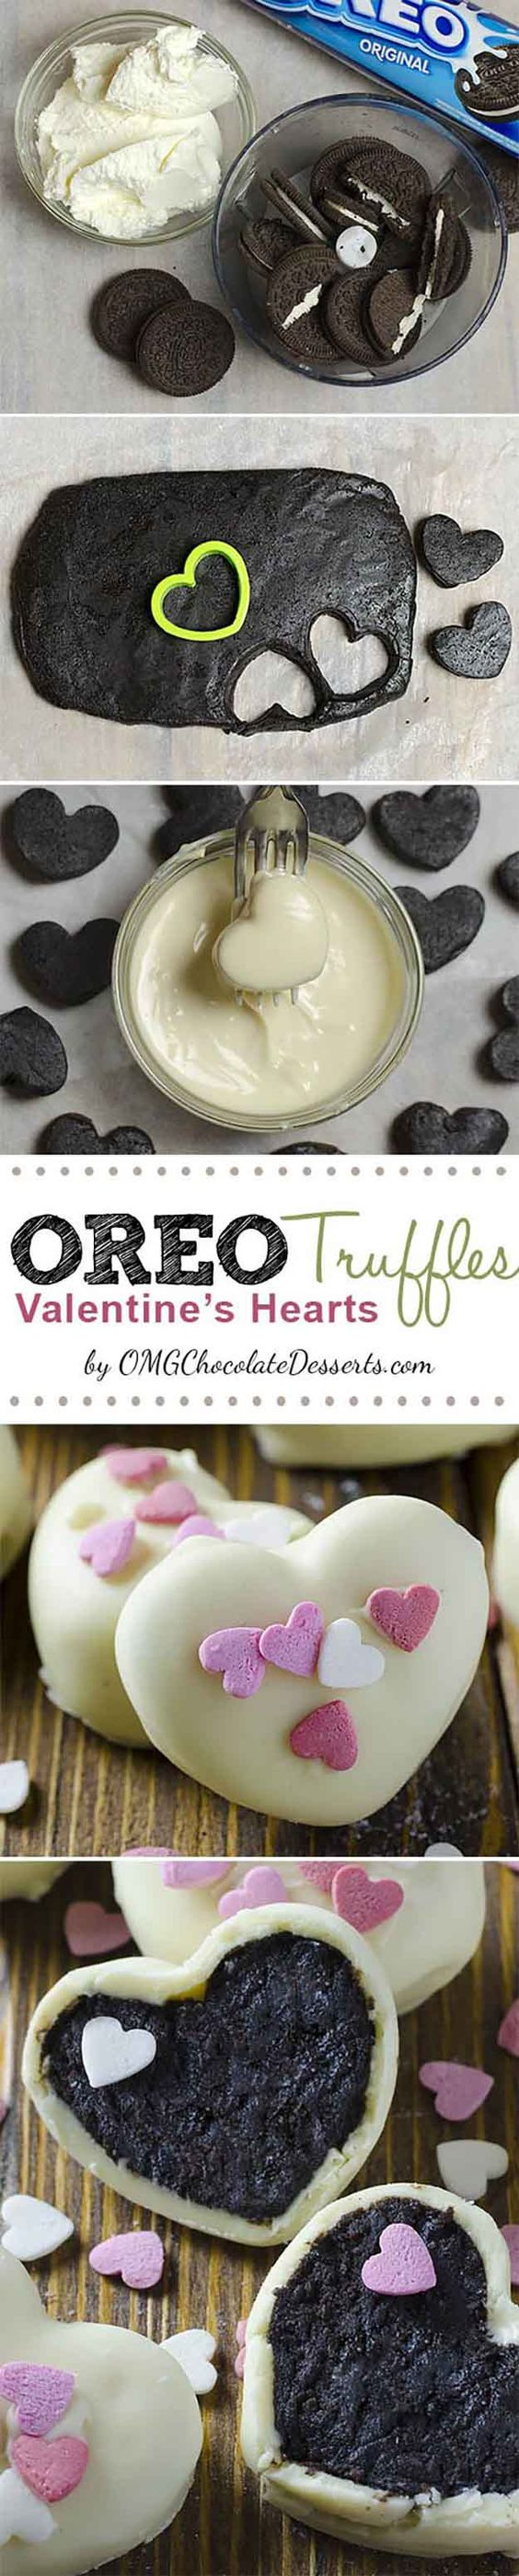 Oreo Truffle Valentines Hearts   25 Valentines Day Treats That Look Way Too Good to Eat   Beautiful Homemade Gifts For Your Love Ones by DIY Ready at http://diyready.com/valentines-day-treats-that-looks-too-good-to-eat/